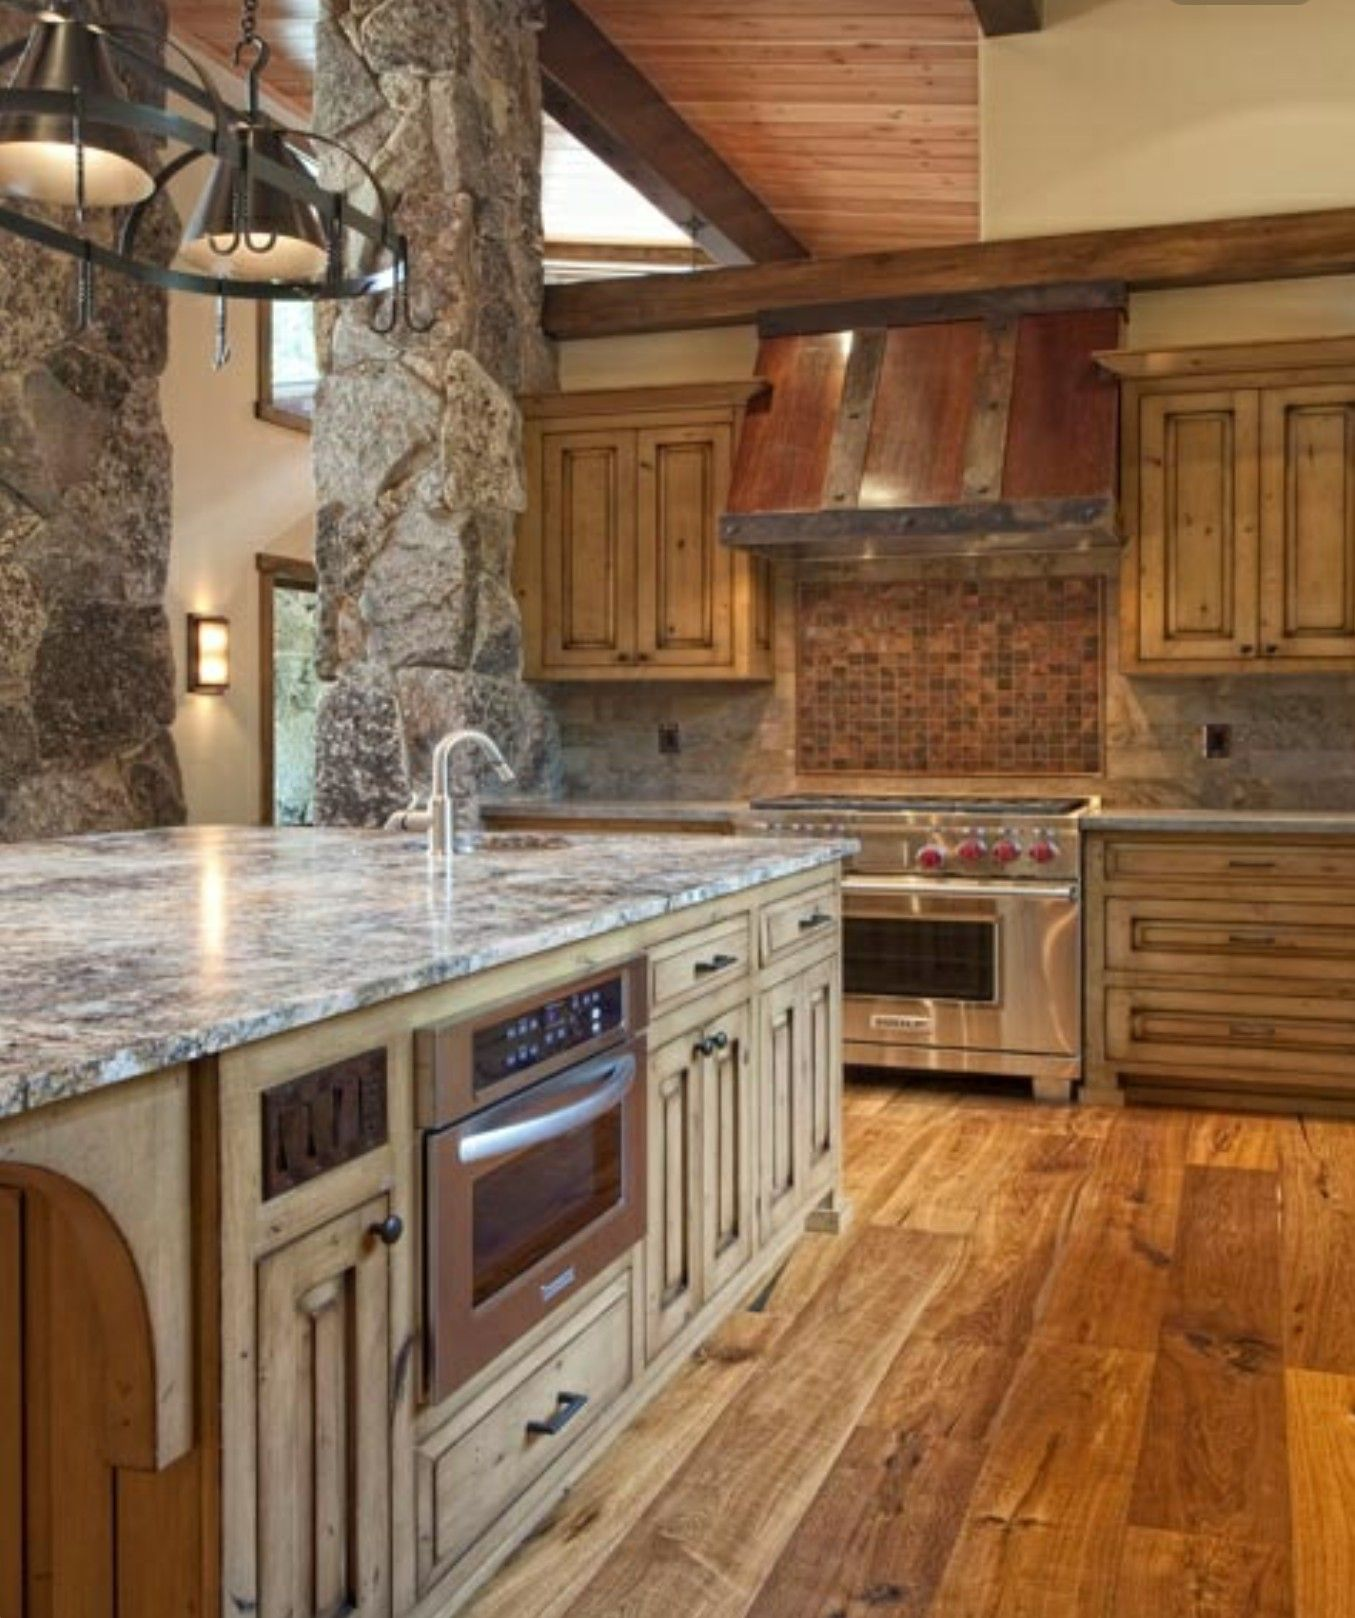 Pin By Tina Owen On Kitchen In 2019 Cottage Kitchen Cabinets